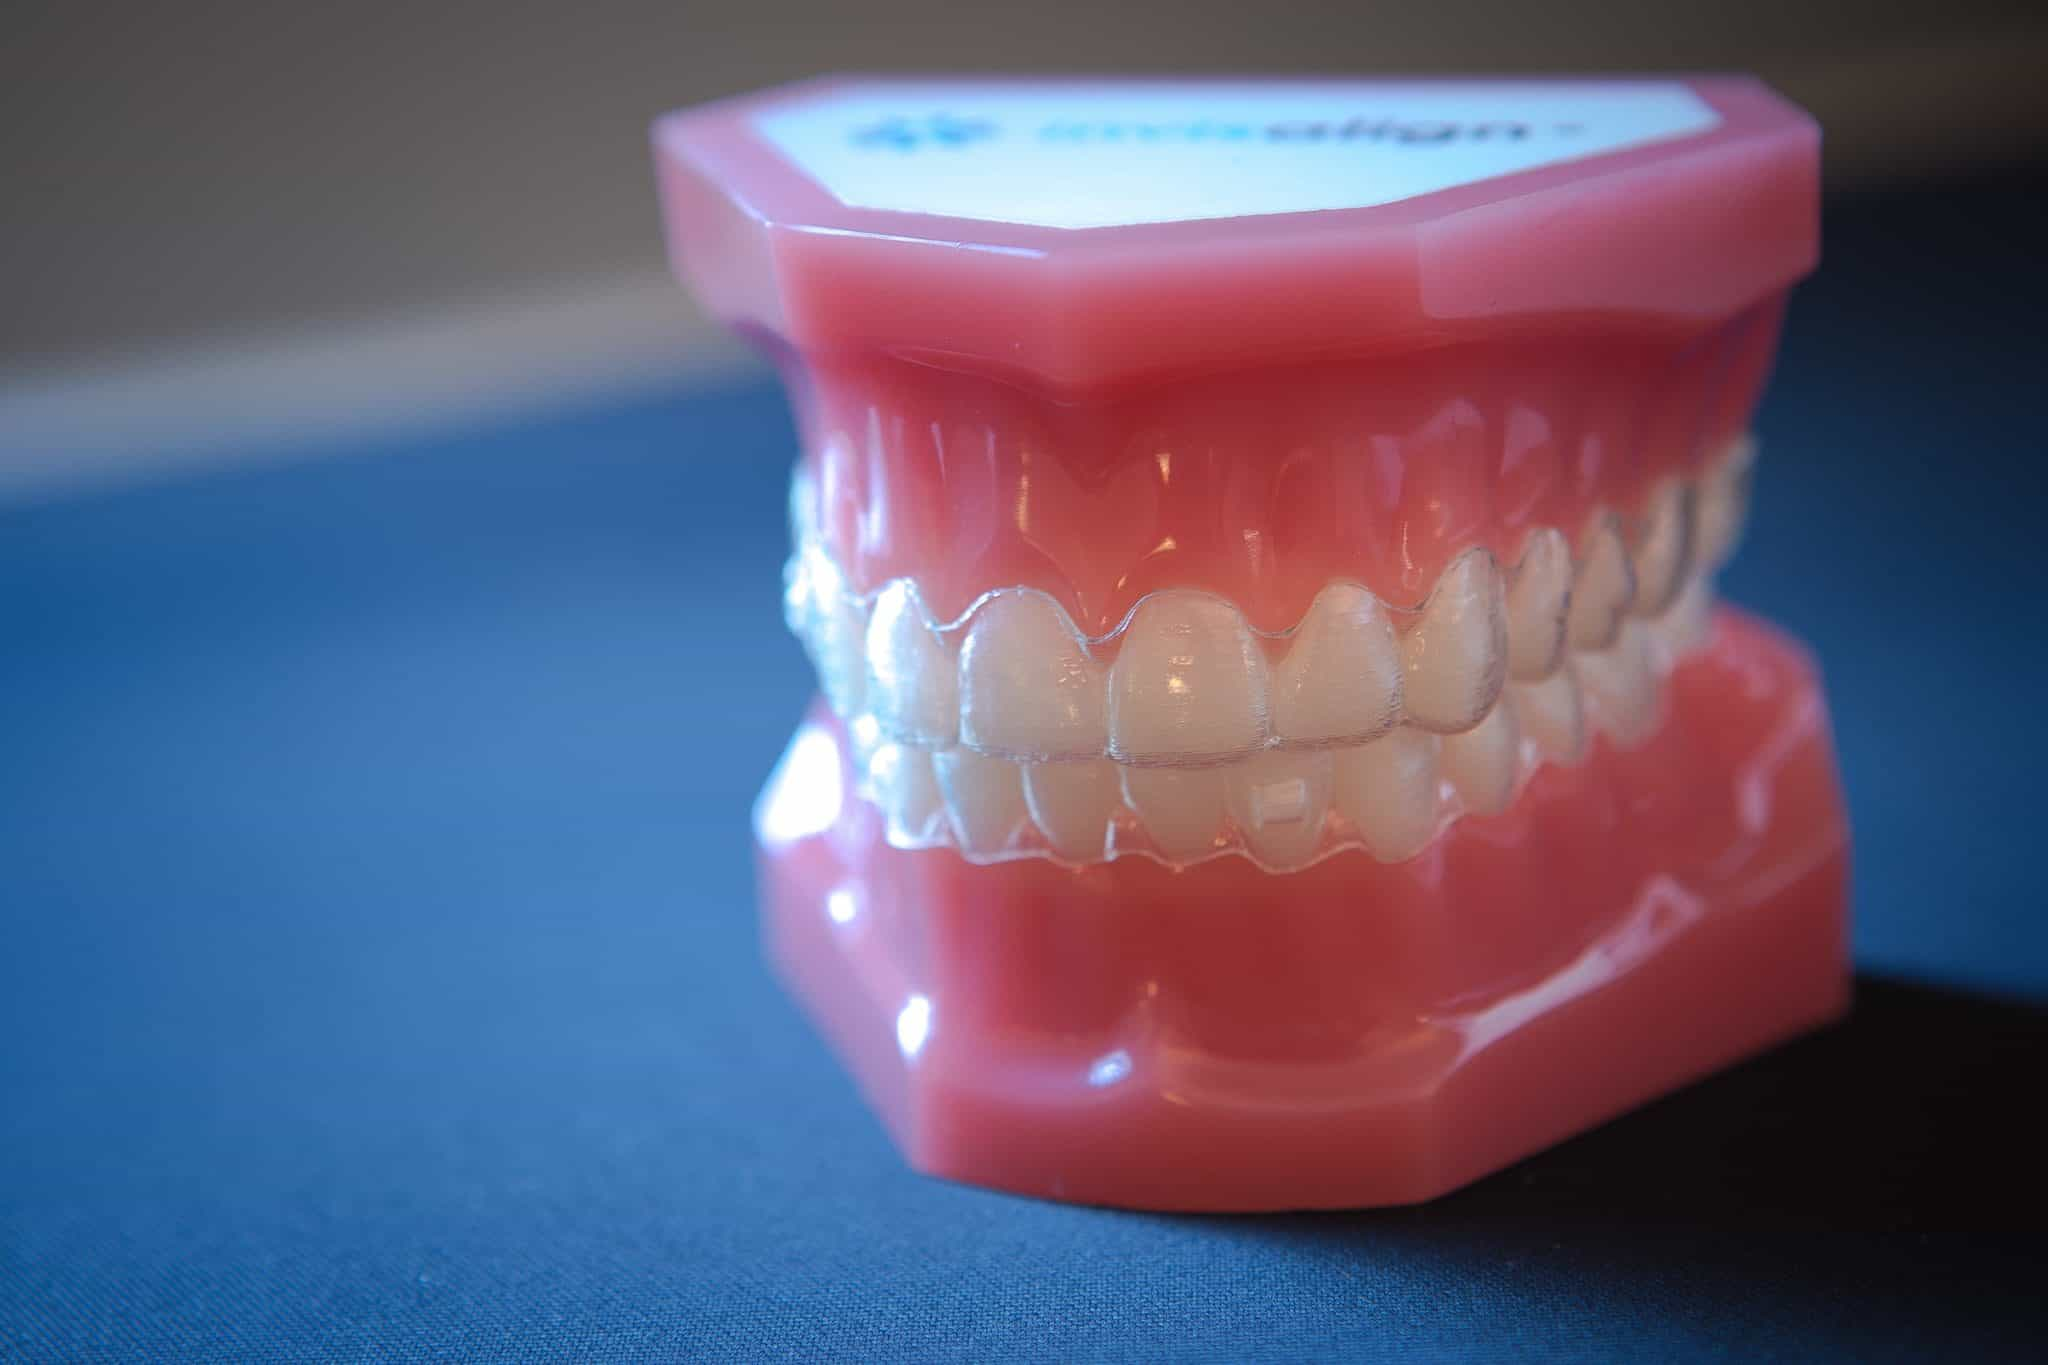 Appel Orthodontics Philadelphia Orthodontics Invisalign 1 of 7 2048x1365 - Invisalign and Invisalign Teen Top 1% Provider